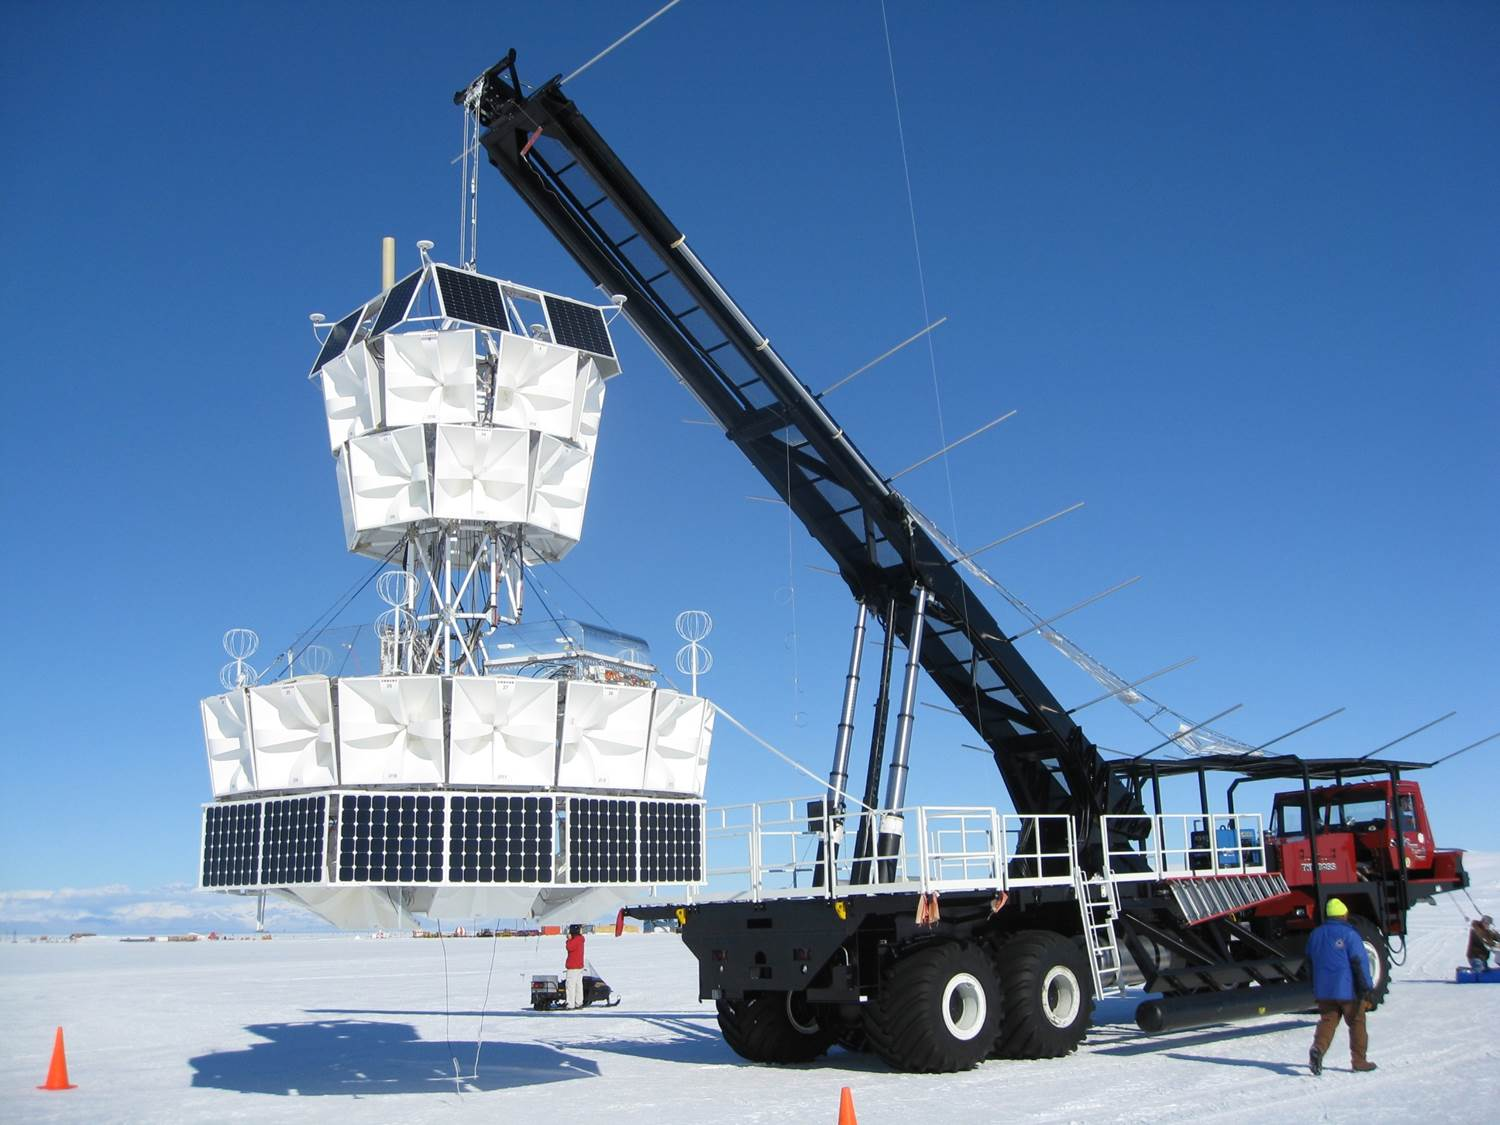 Sending a multi-ton science payload into the stratosphere is hard enough. Doing it in Antarctica makes it even harder. Credit: Nasa Balloon Programs Office